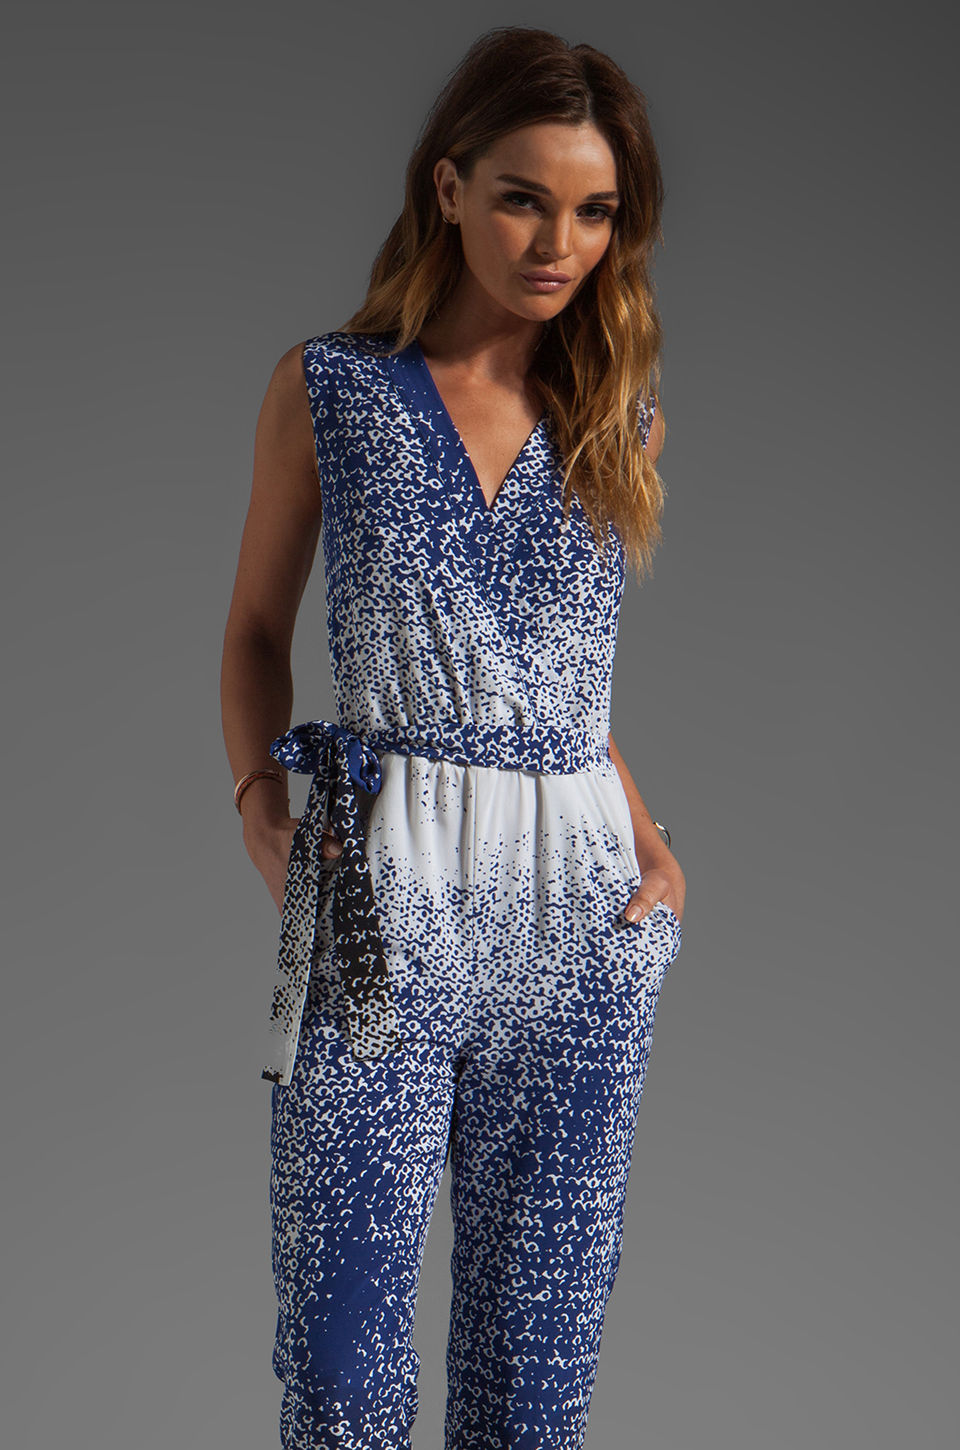 Diane von Furstenberg Kawena Jumpsuit in Shaded Curtain Navy